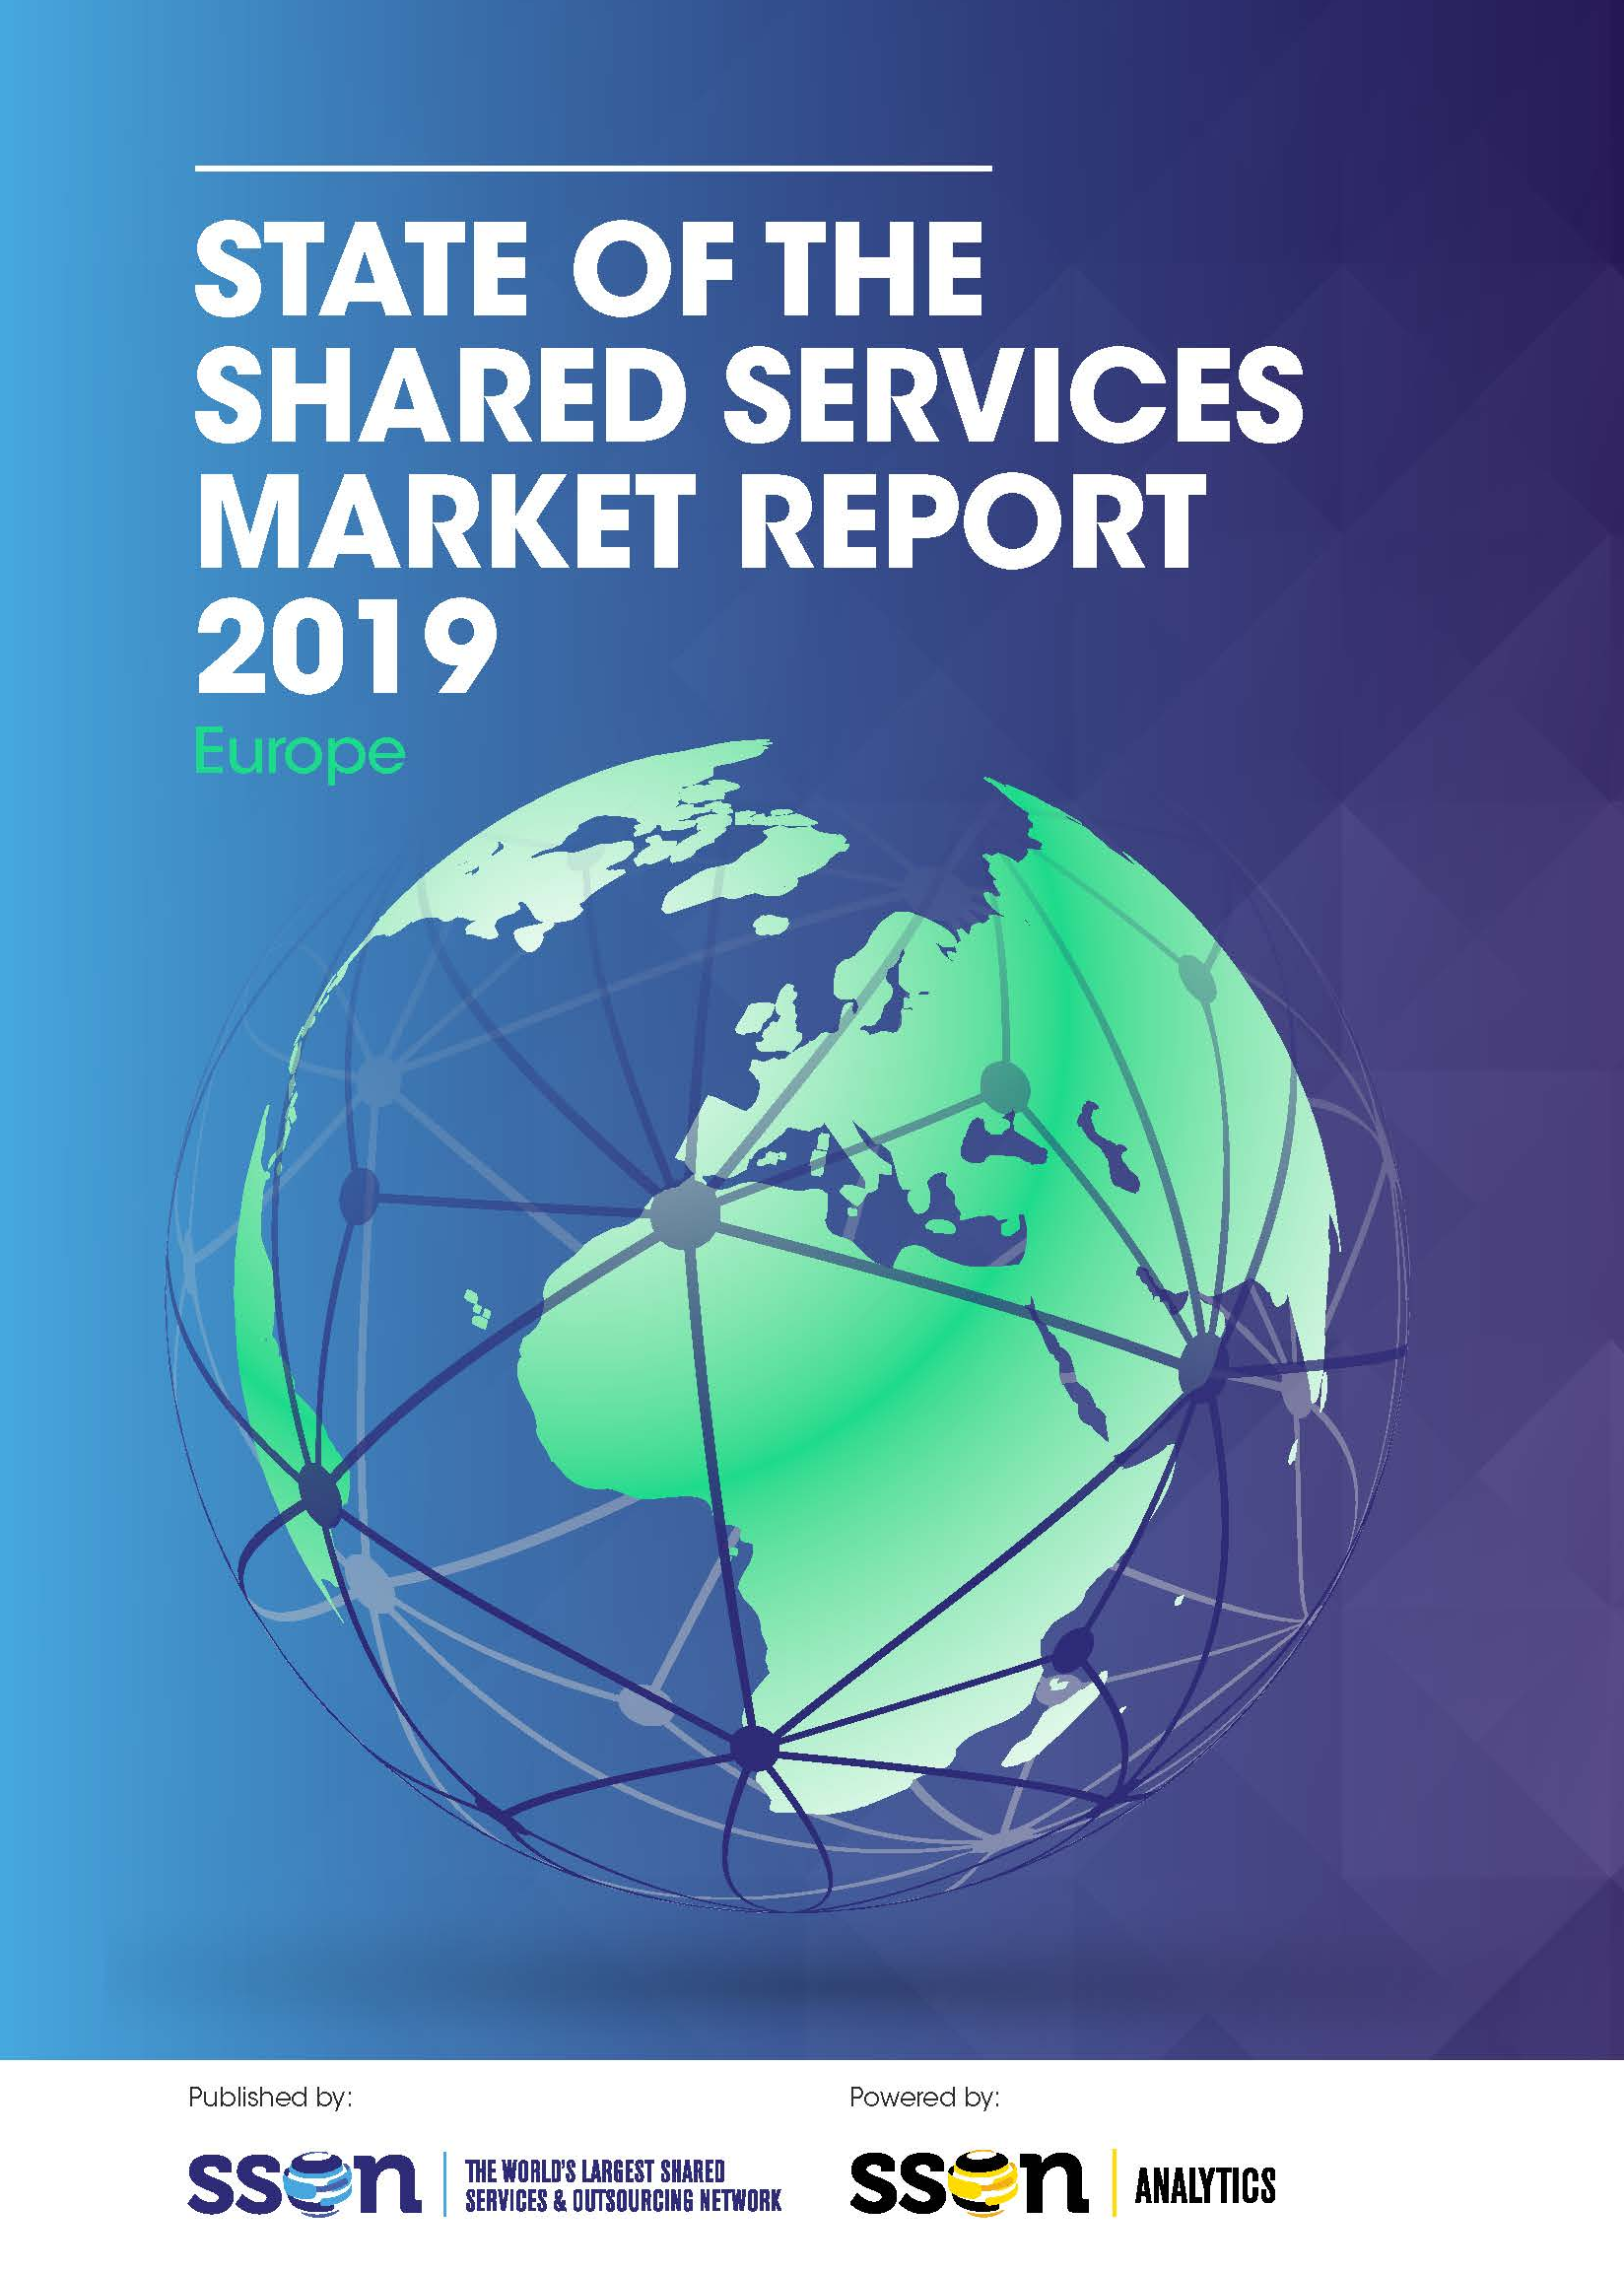 State of the Shared Services Market Report 2019